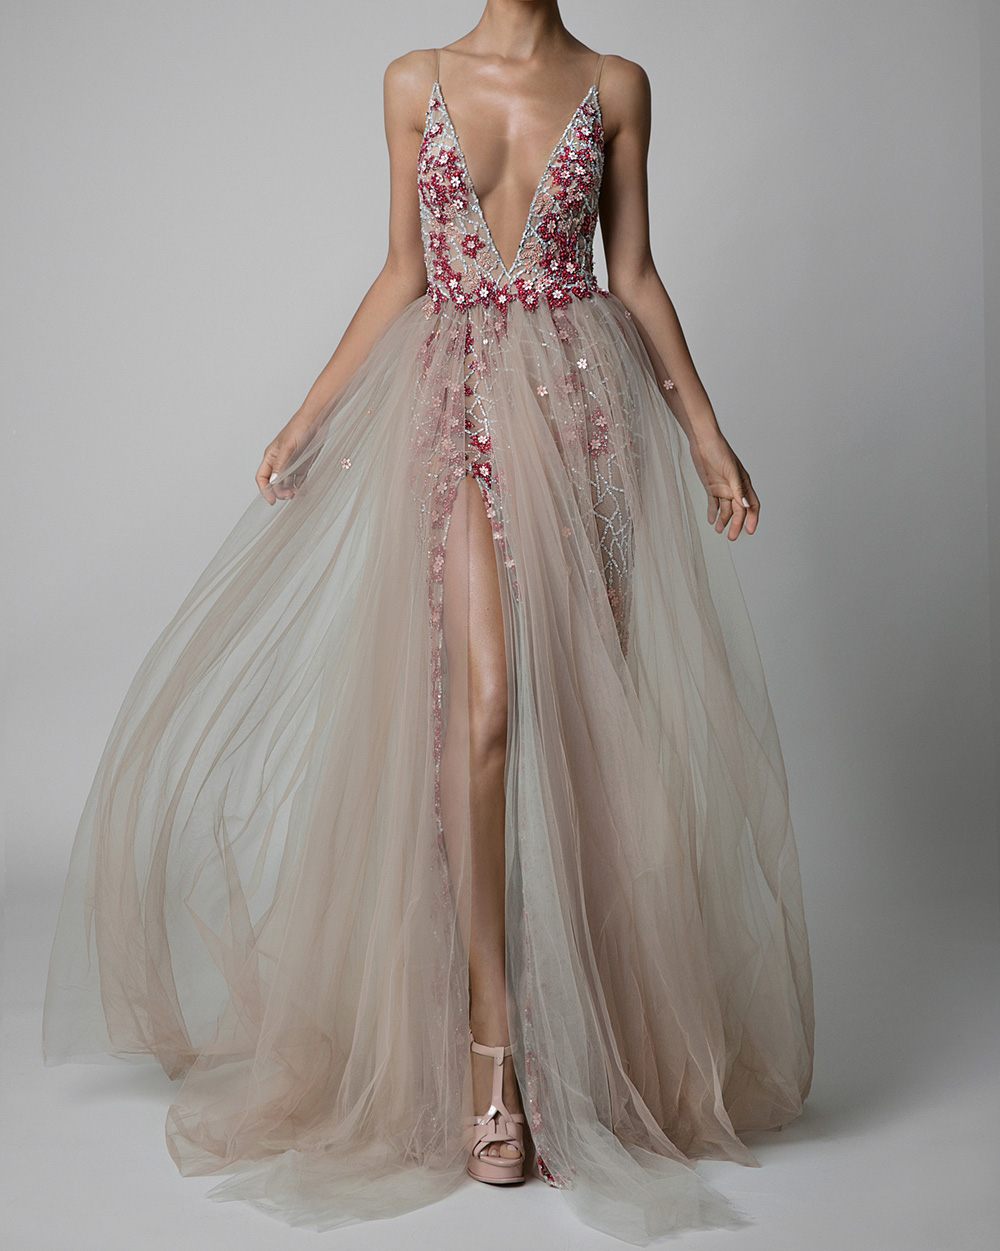 SSYFashion New Luxury High-end Evening Dress Sexy Deep V-neck Backless High-split Sequins Beading Long Beach Formal Gown Vestido